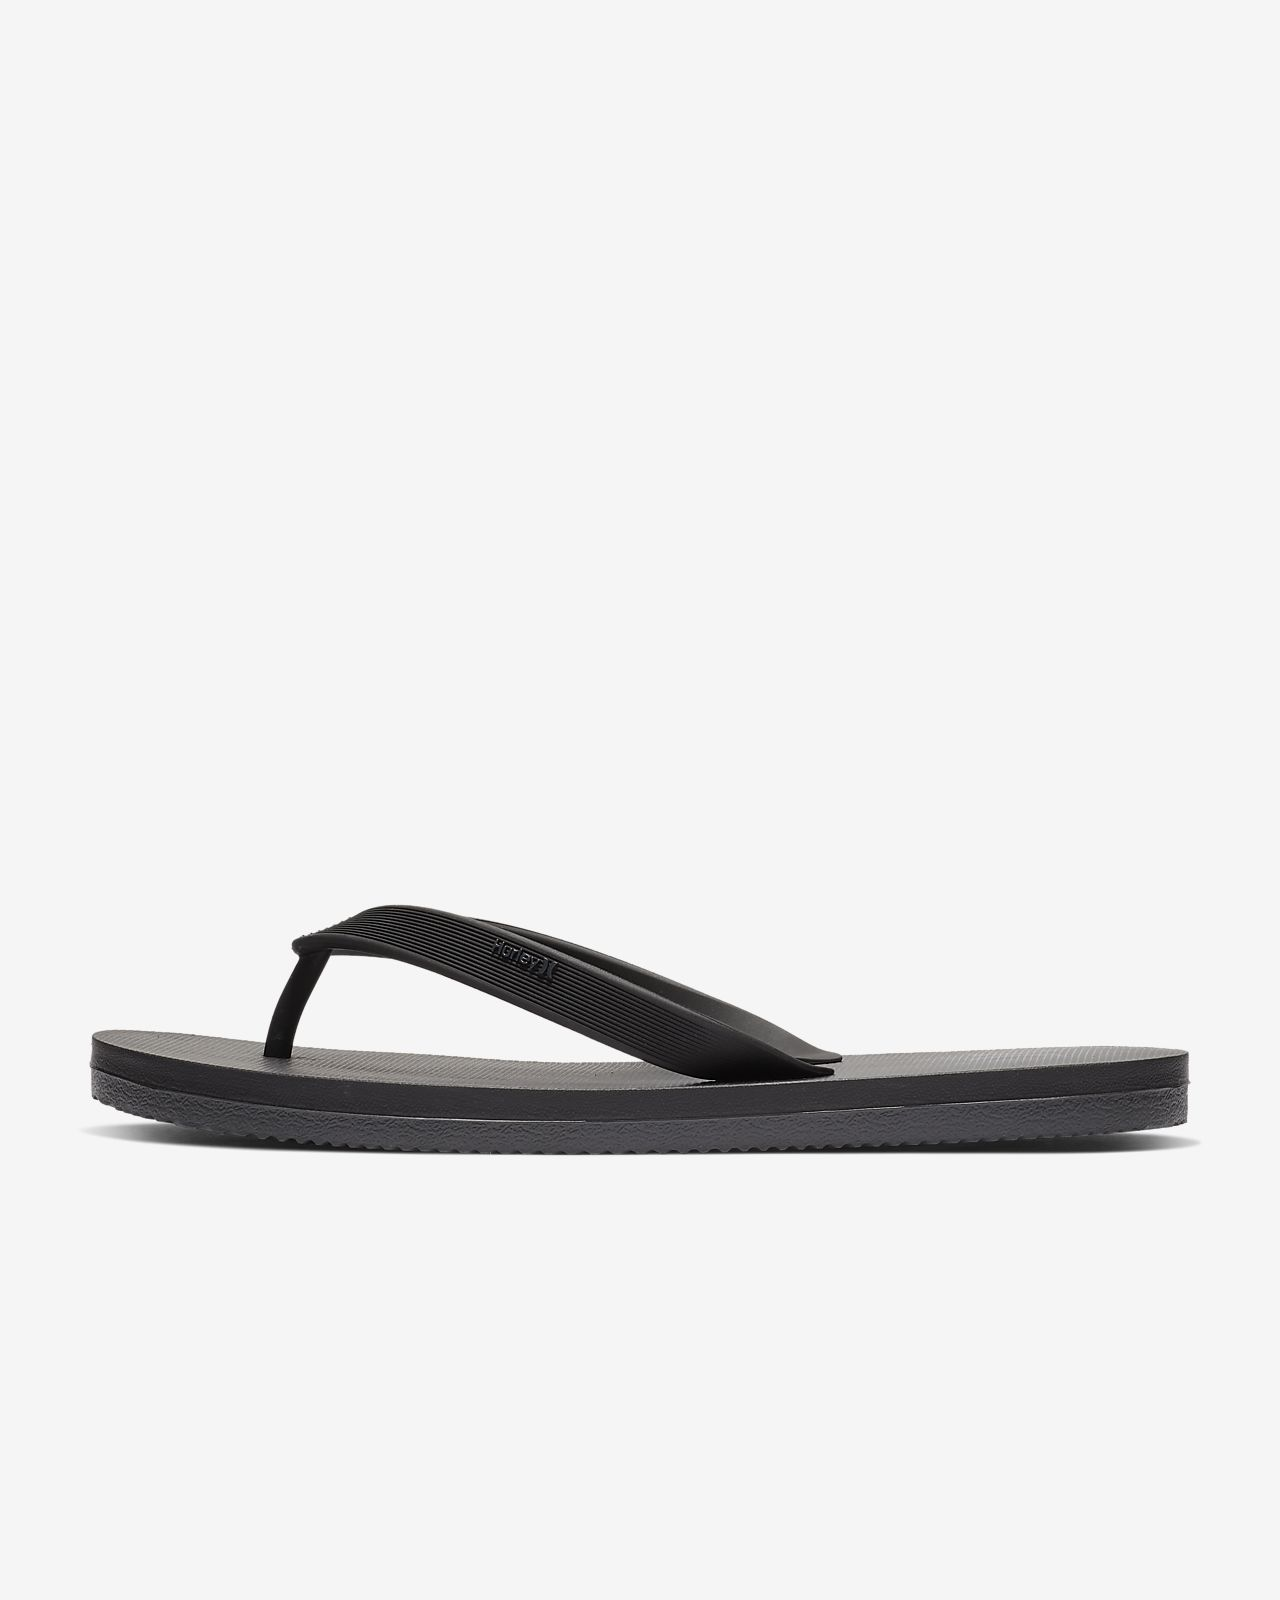 ad9b21b4194 Hurley One And Only Men s Sandal. Nike.com IE